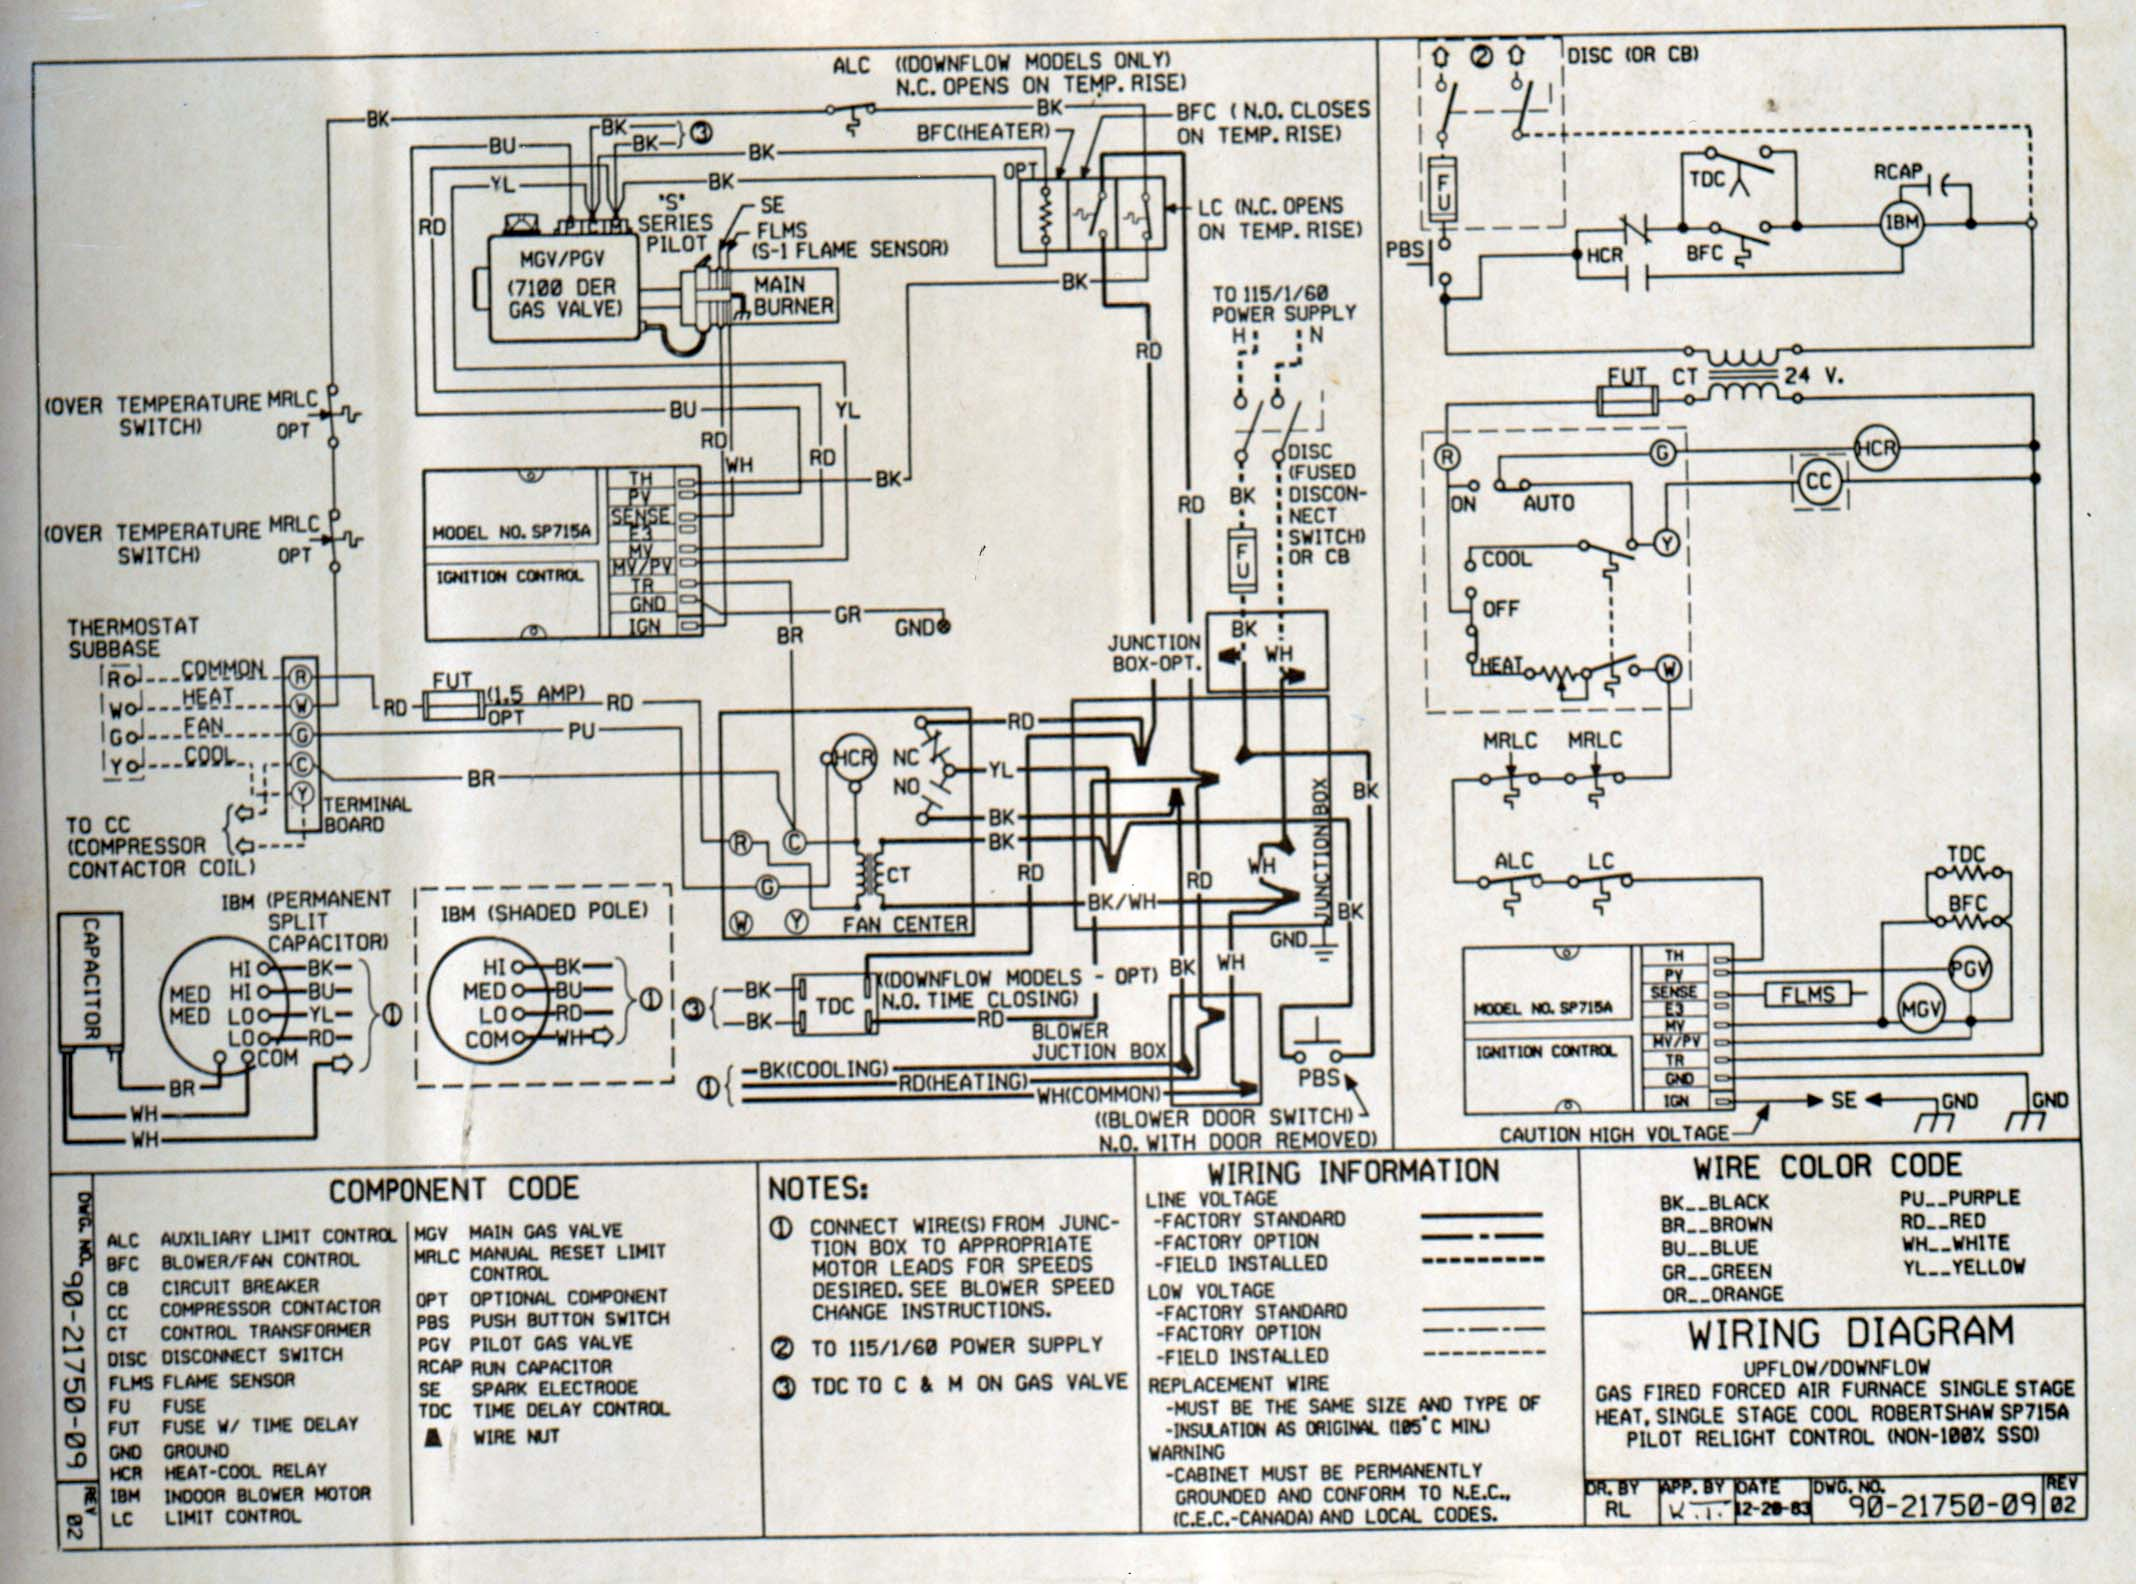 2011 02 27_064544_wiring york furnace control board schematic circuit and schematics diagram Furnace Wiring Diagram Older Furnace at soozxer.org